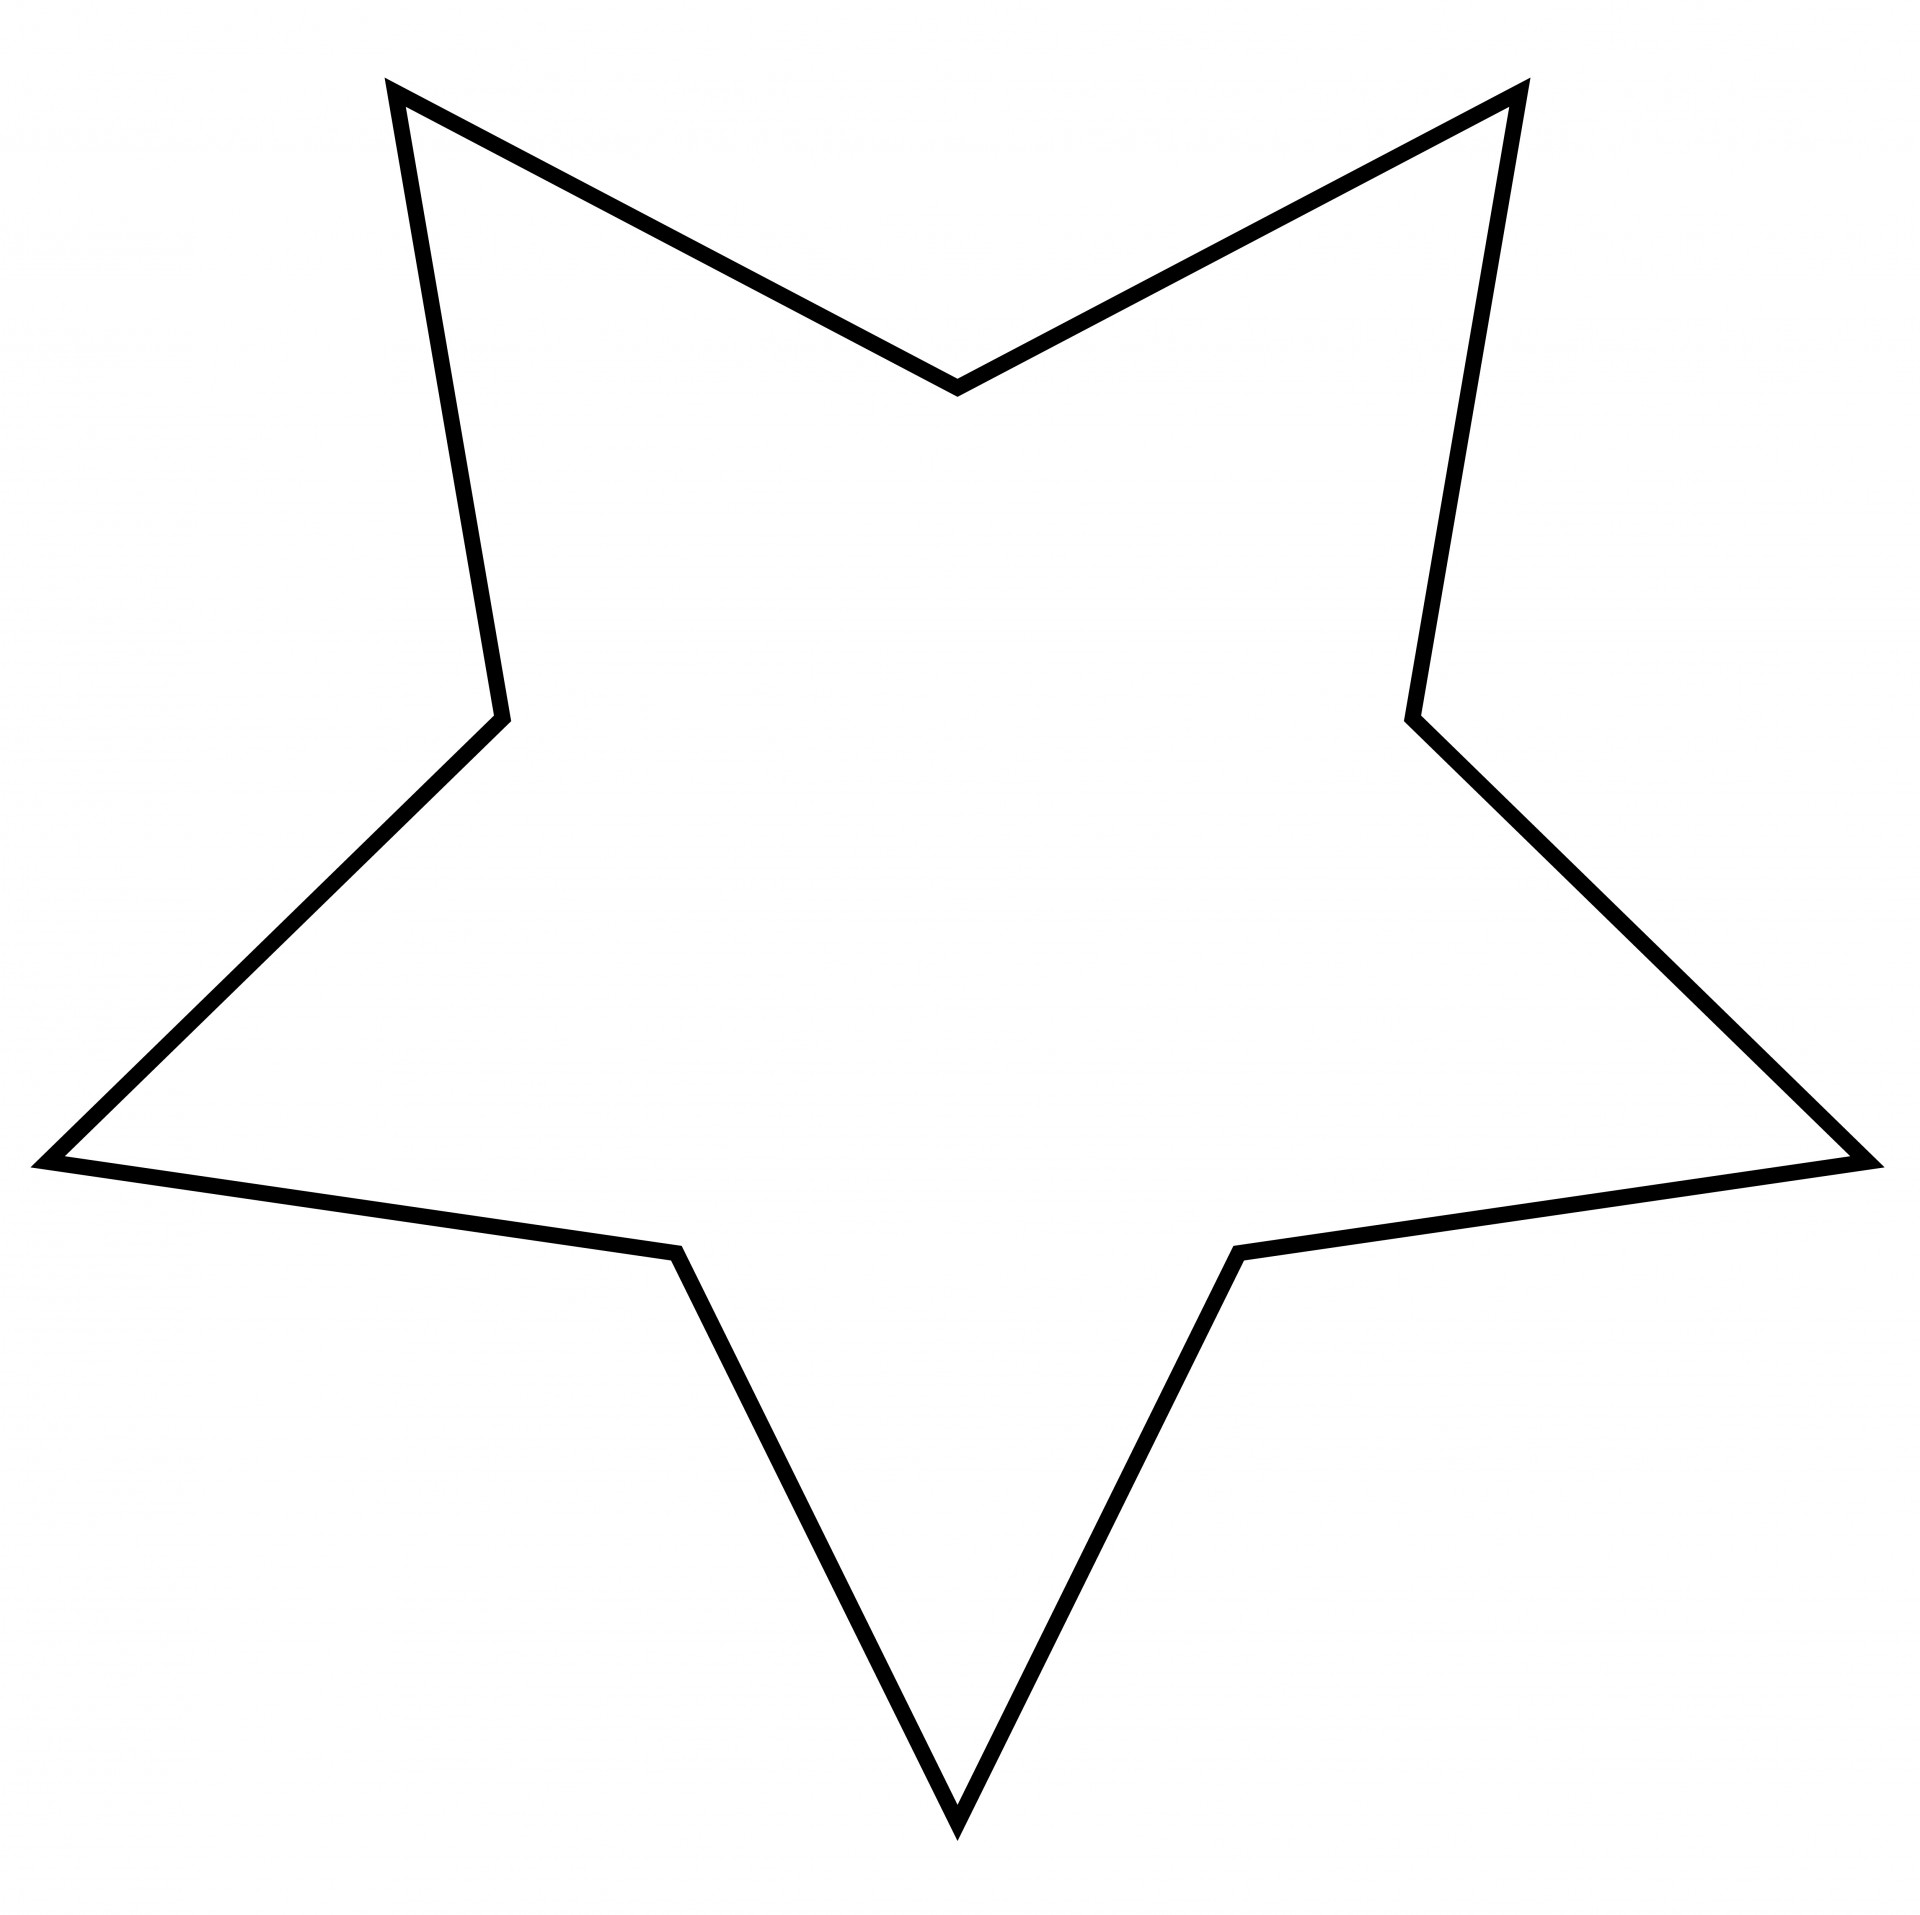 1920x1915 Star Outline Clipart Free Stock Photo